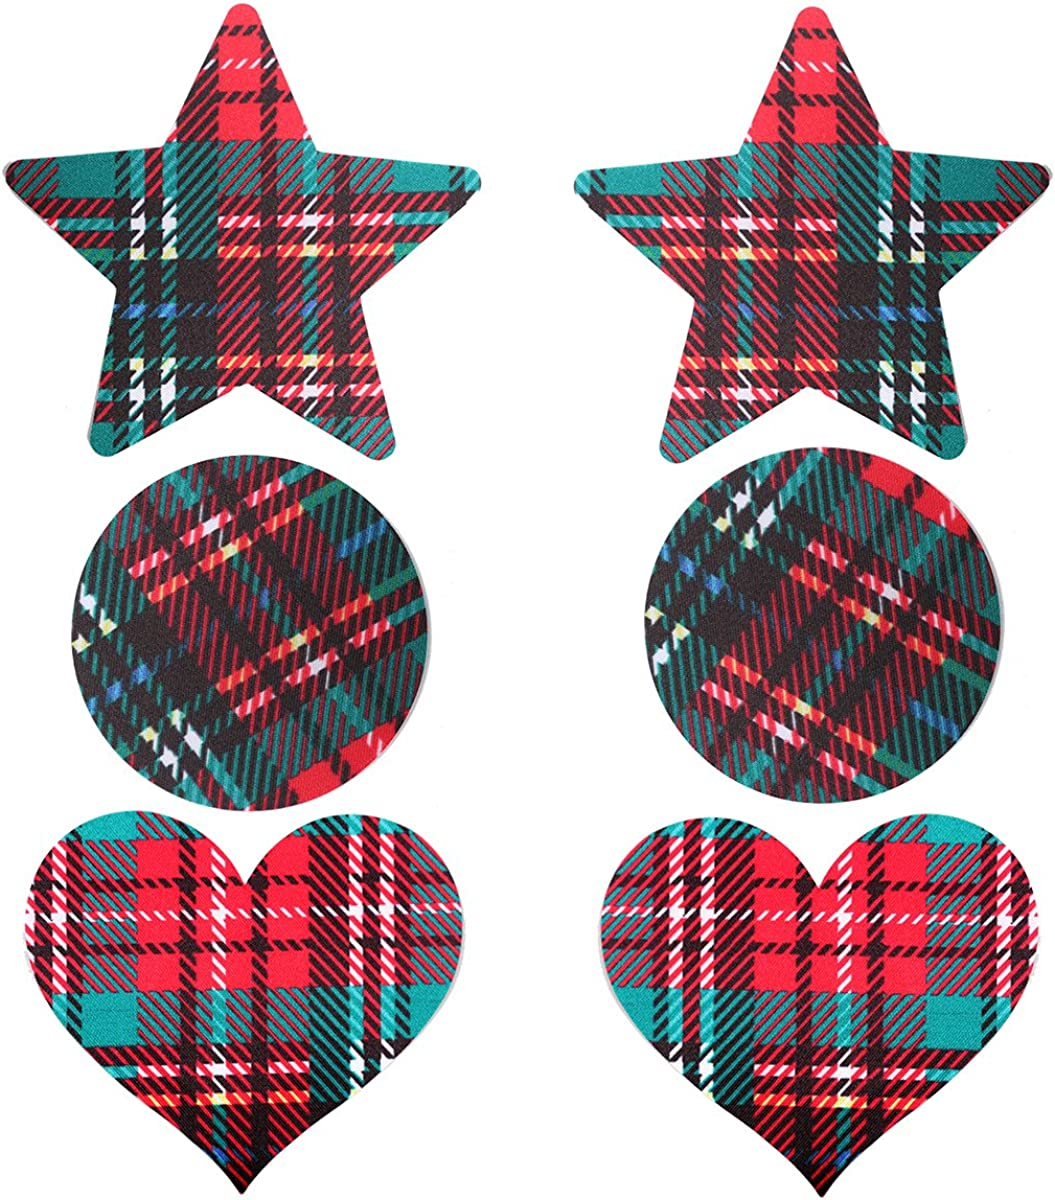 Ypser St Patrick s Day Nipple Covers Satin Pasties Disposable Self Adhesive Bra Pad Stickers